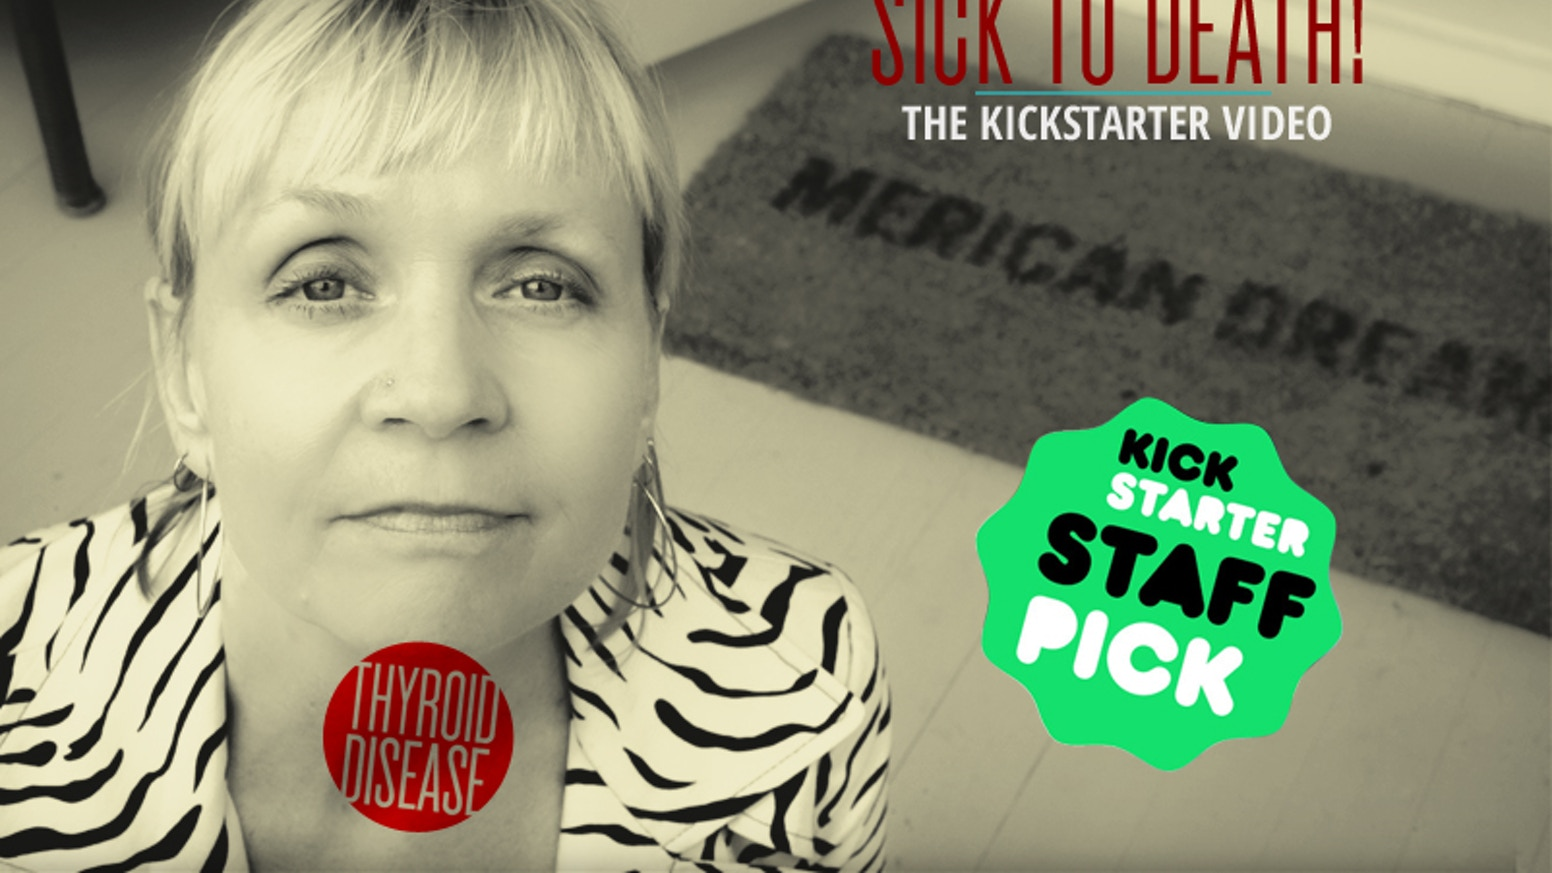 While grappling with thyroid disease, filmmaker Maggie Hadleigh-West uncovers a silent epidemic and the systemic issues at its roots. Go to www.sick2death.com to learn more and donate below.